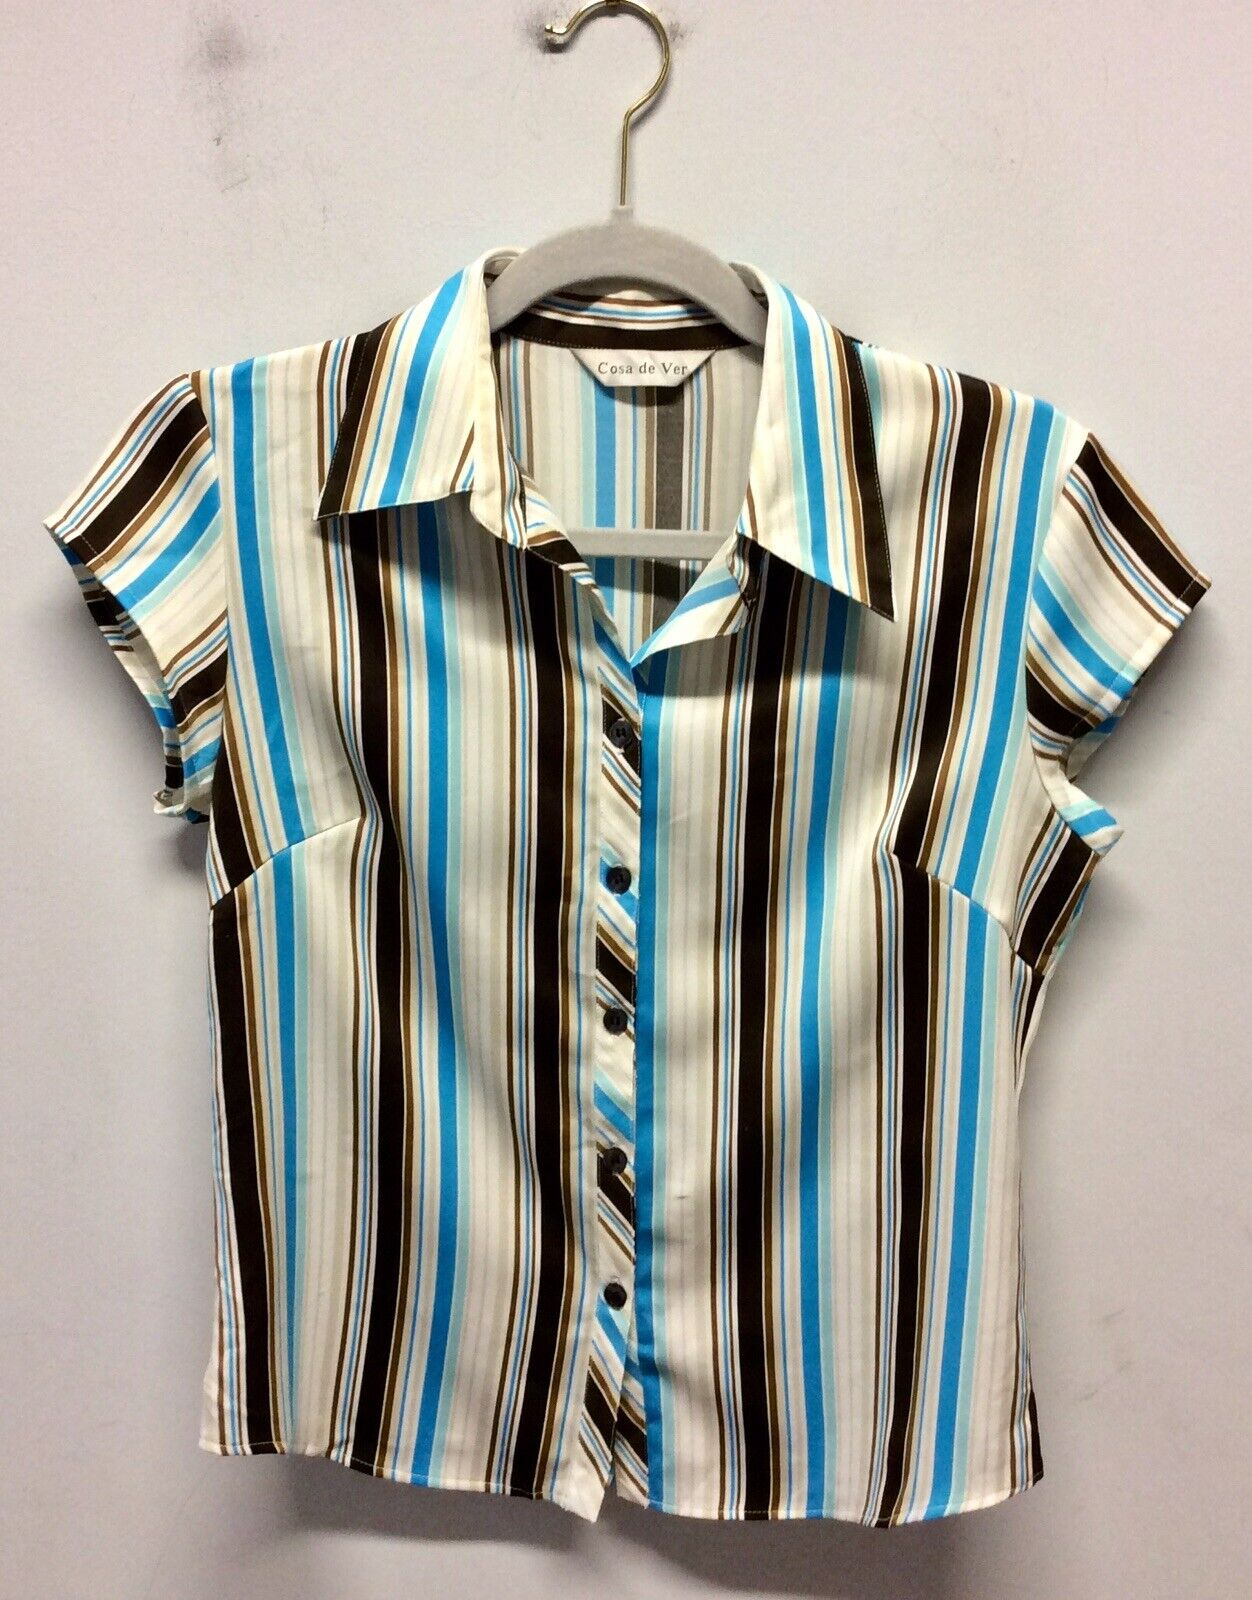 1970s Blue, White And Brown Striped Shirt UK 10